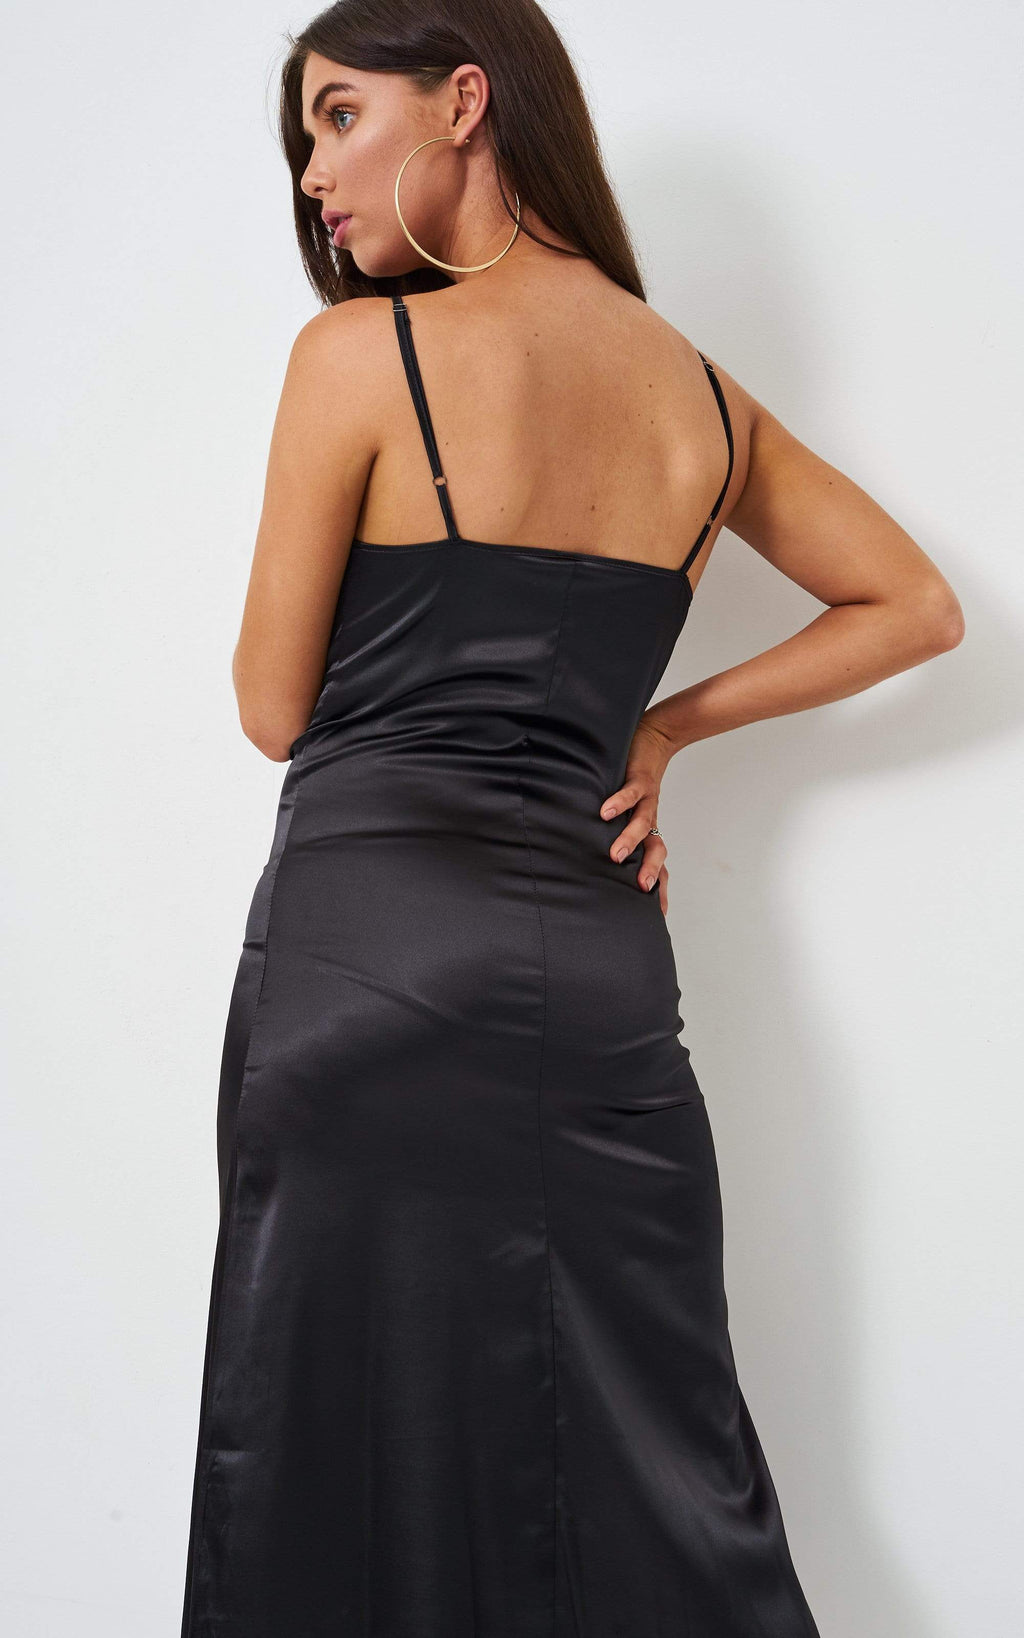 Vanyia Black Satin Slip Midi Dress - love frontrow